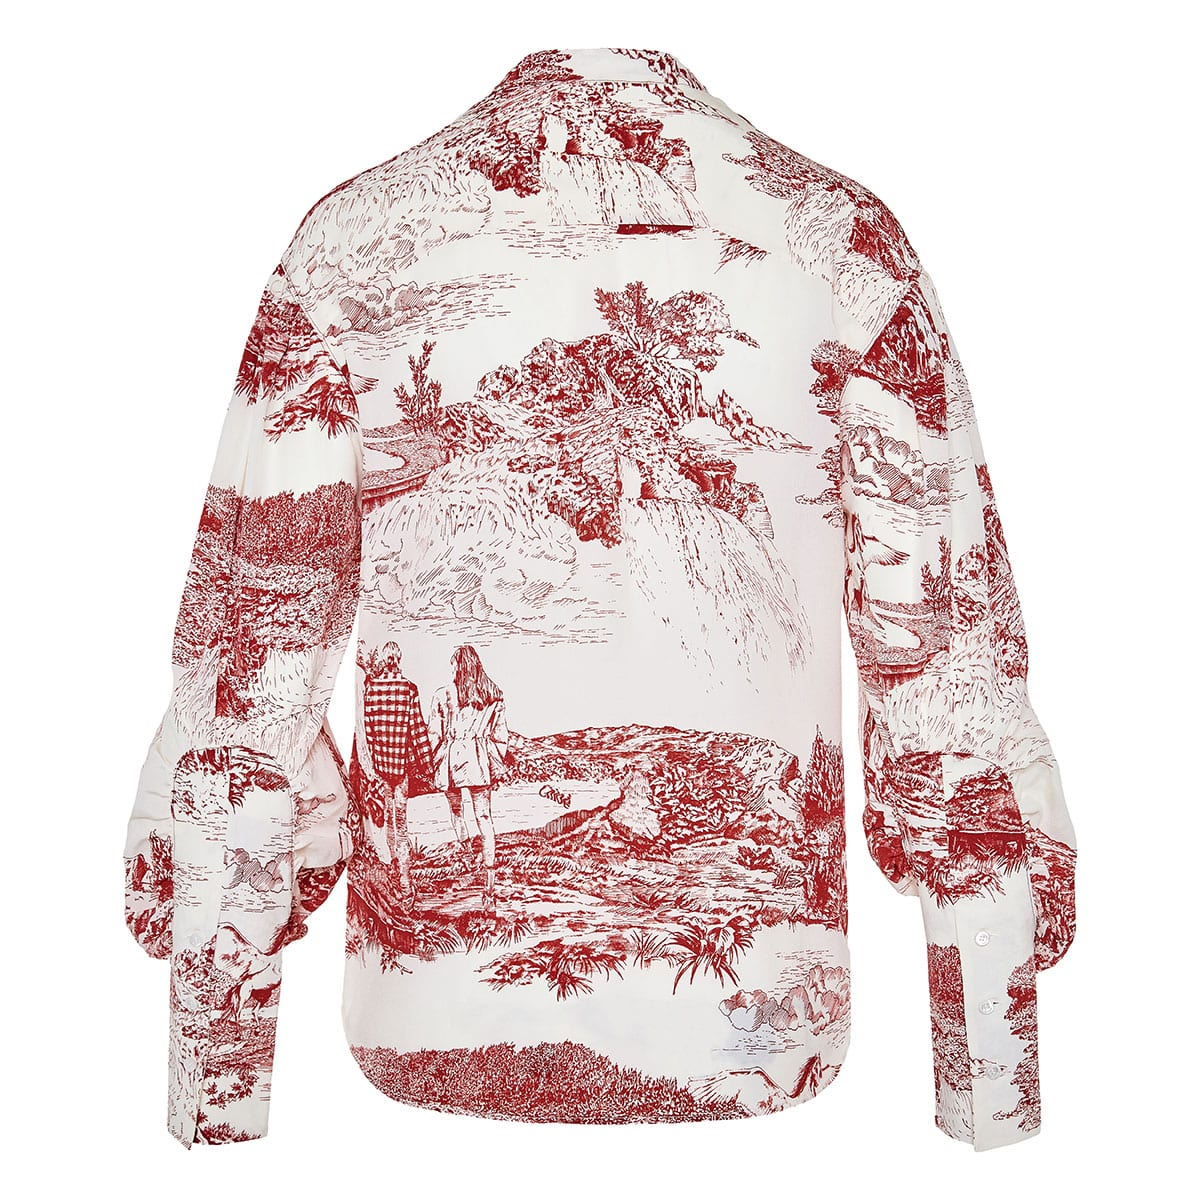 Balloon-sleeved printed blouse